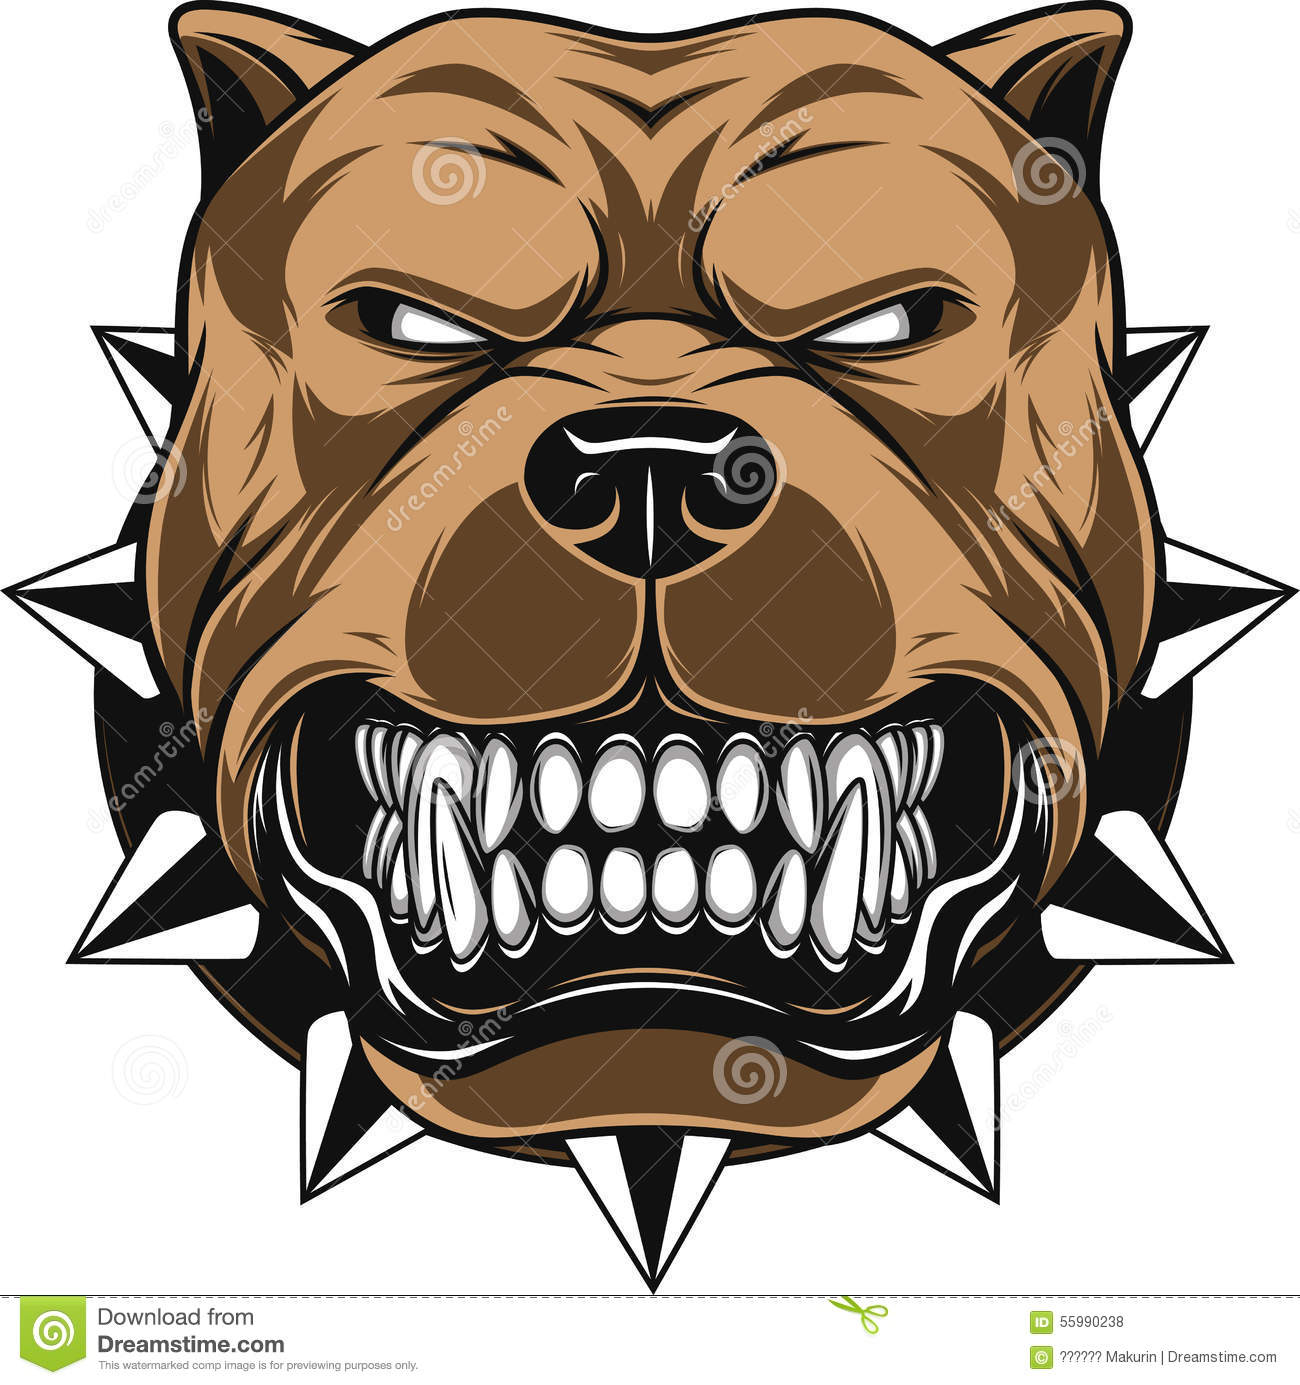 Background image 9apps - Prank Angry Pitbull For Android Free Download 9apps